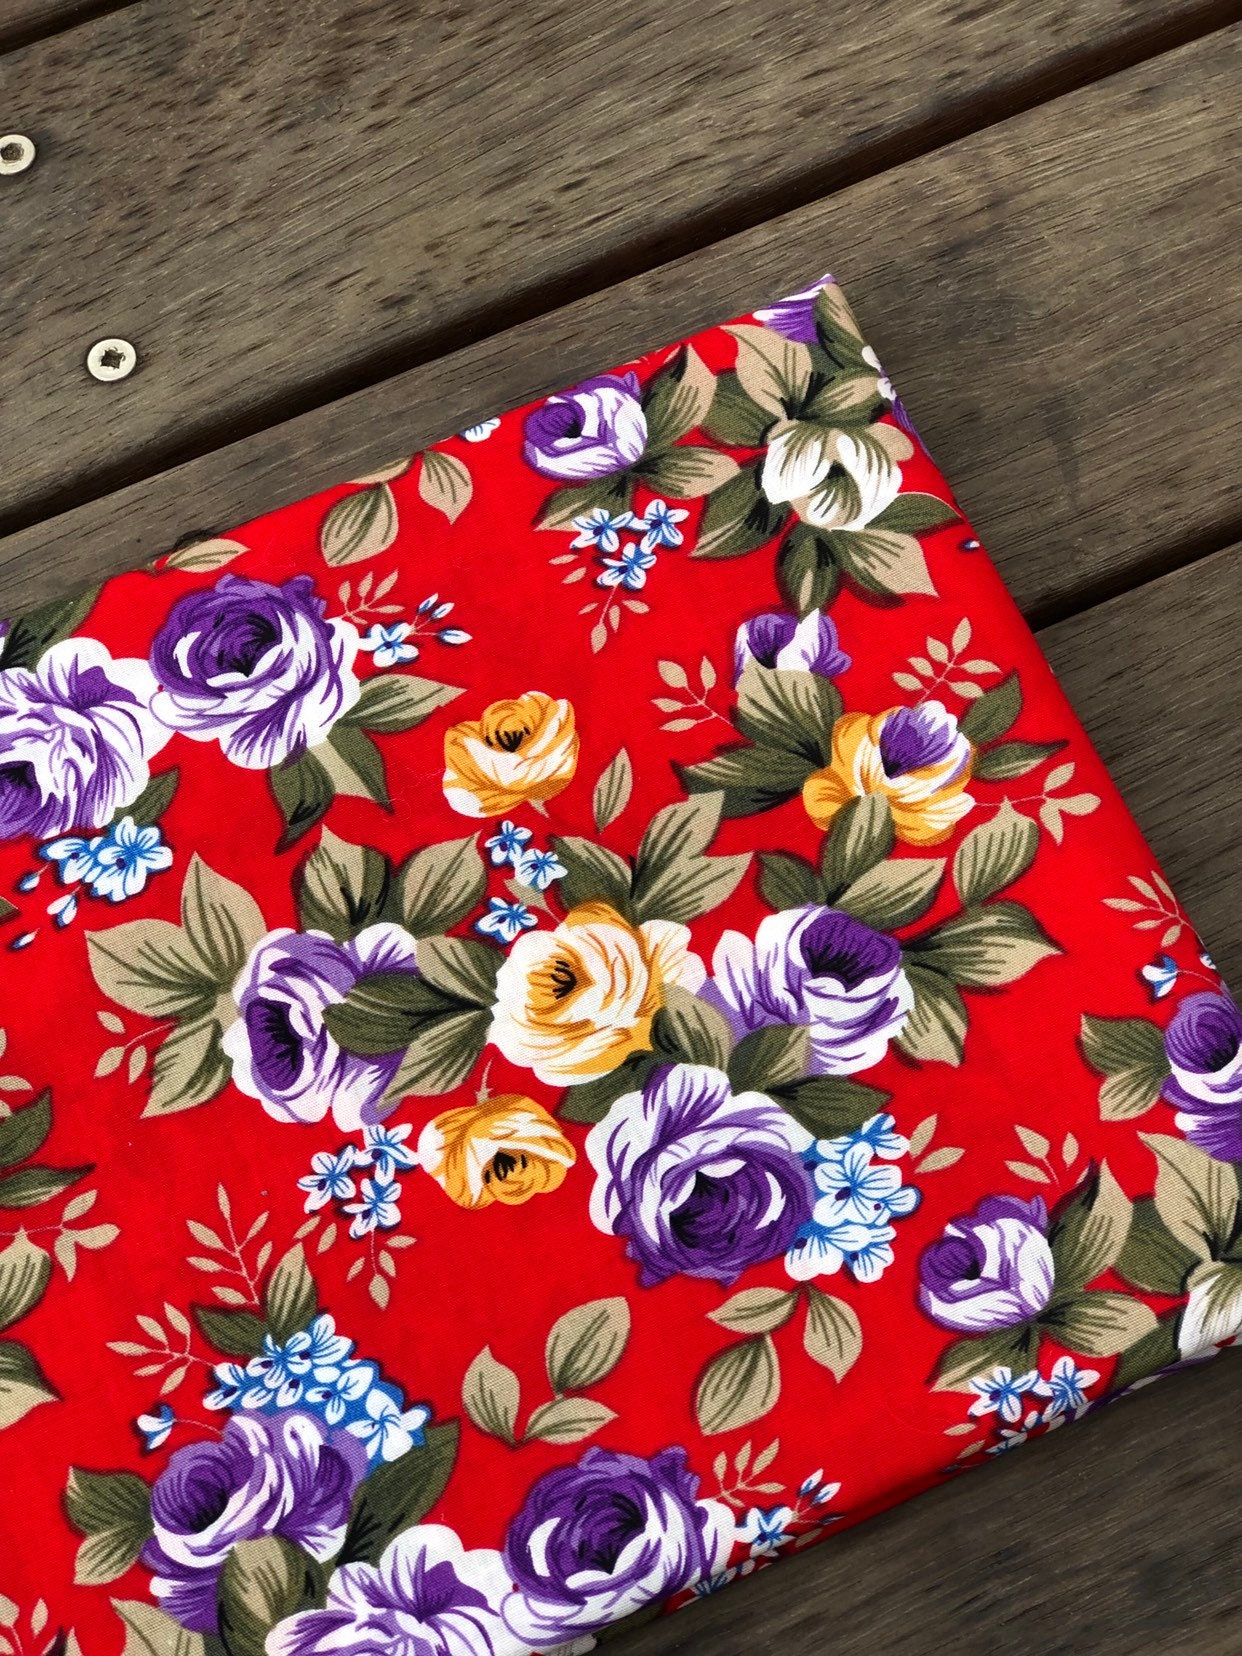 **SALE** GOOD QUALITY 100/% COTTON TWILL RED BY THE METRE 150cm WIDE GOOD WEIGHT